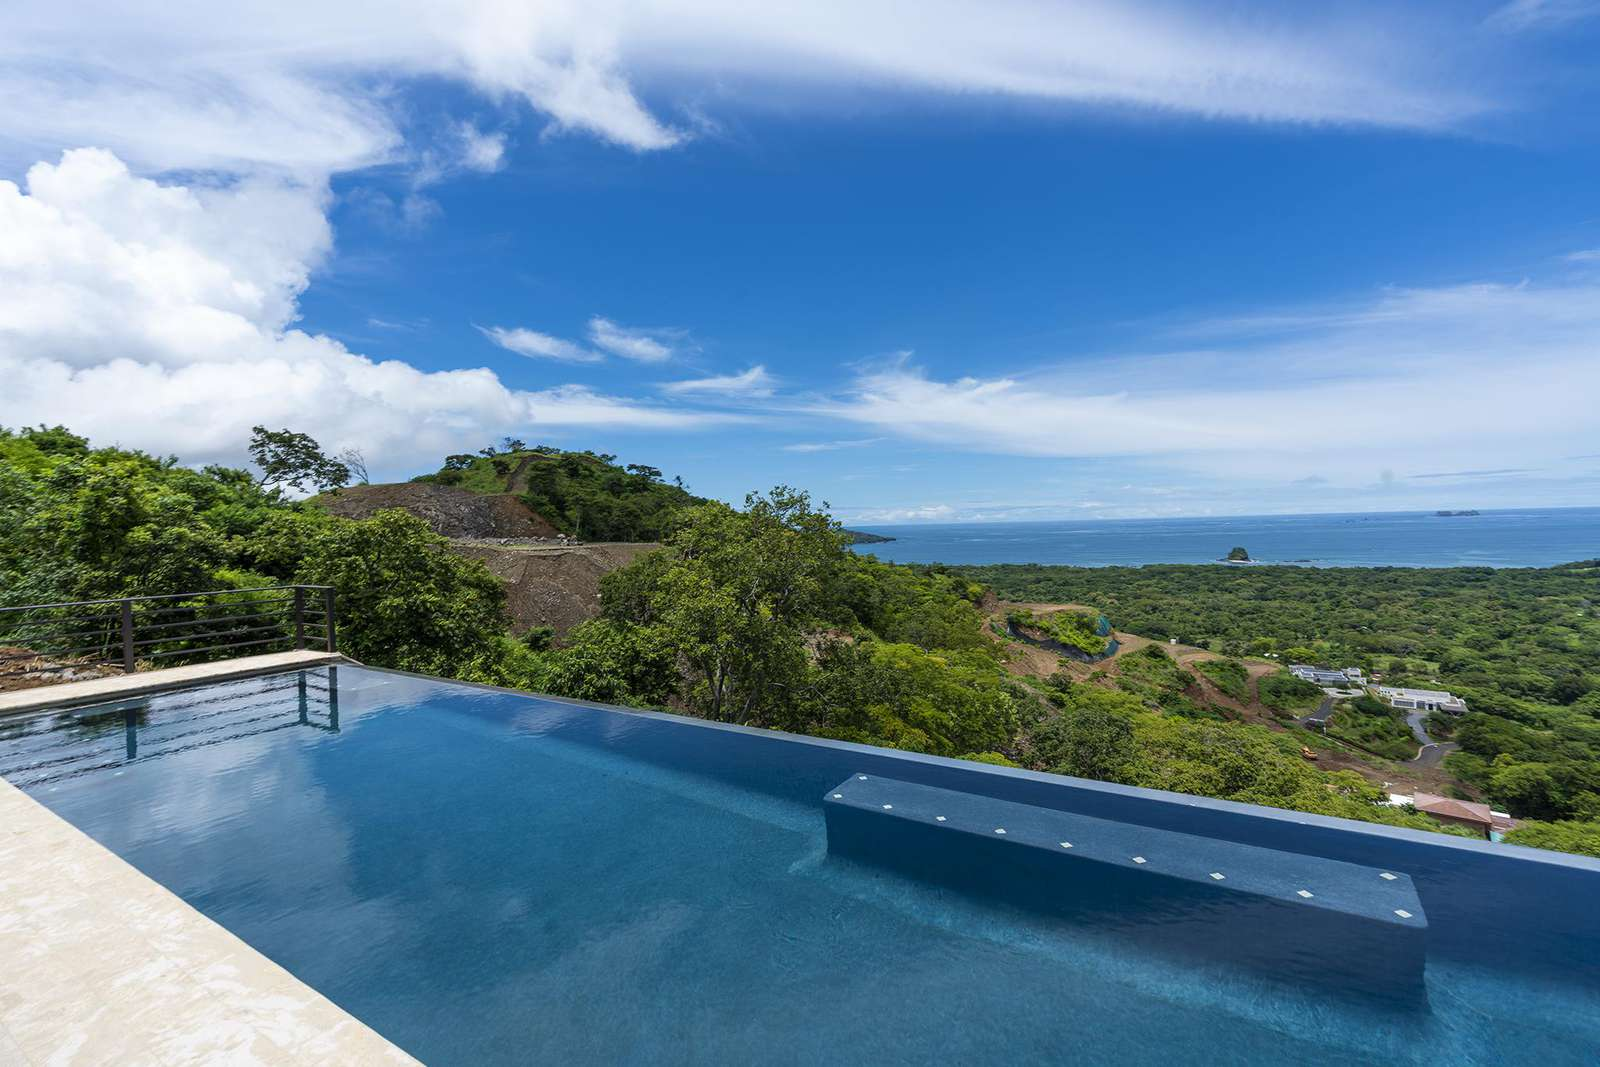 Another view of the amazing infinity edge pool